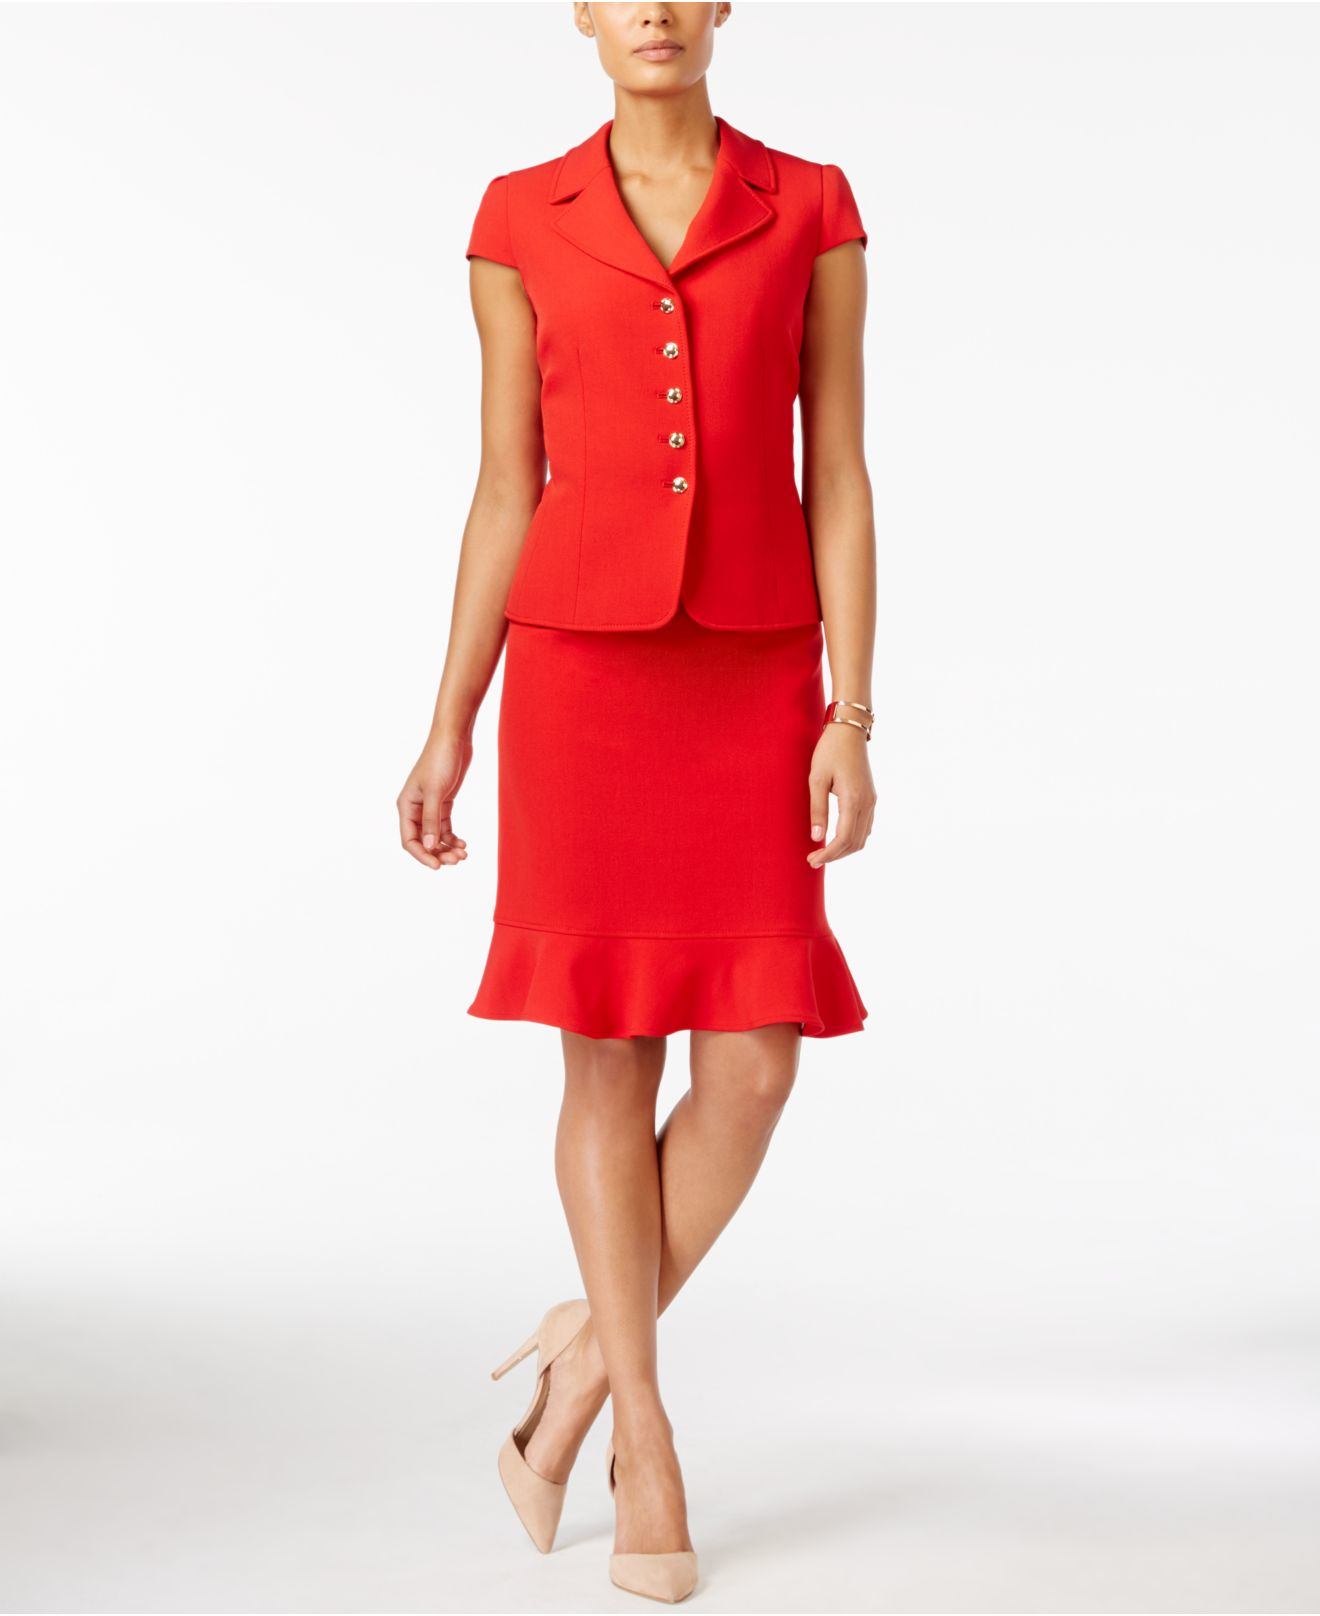 Find great deals on eBay for short sleeve skirt suit. Shop with confidence.